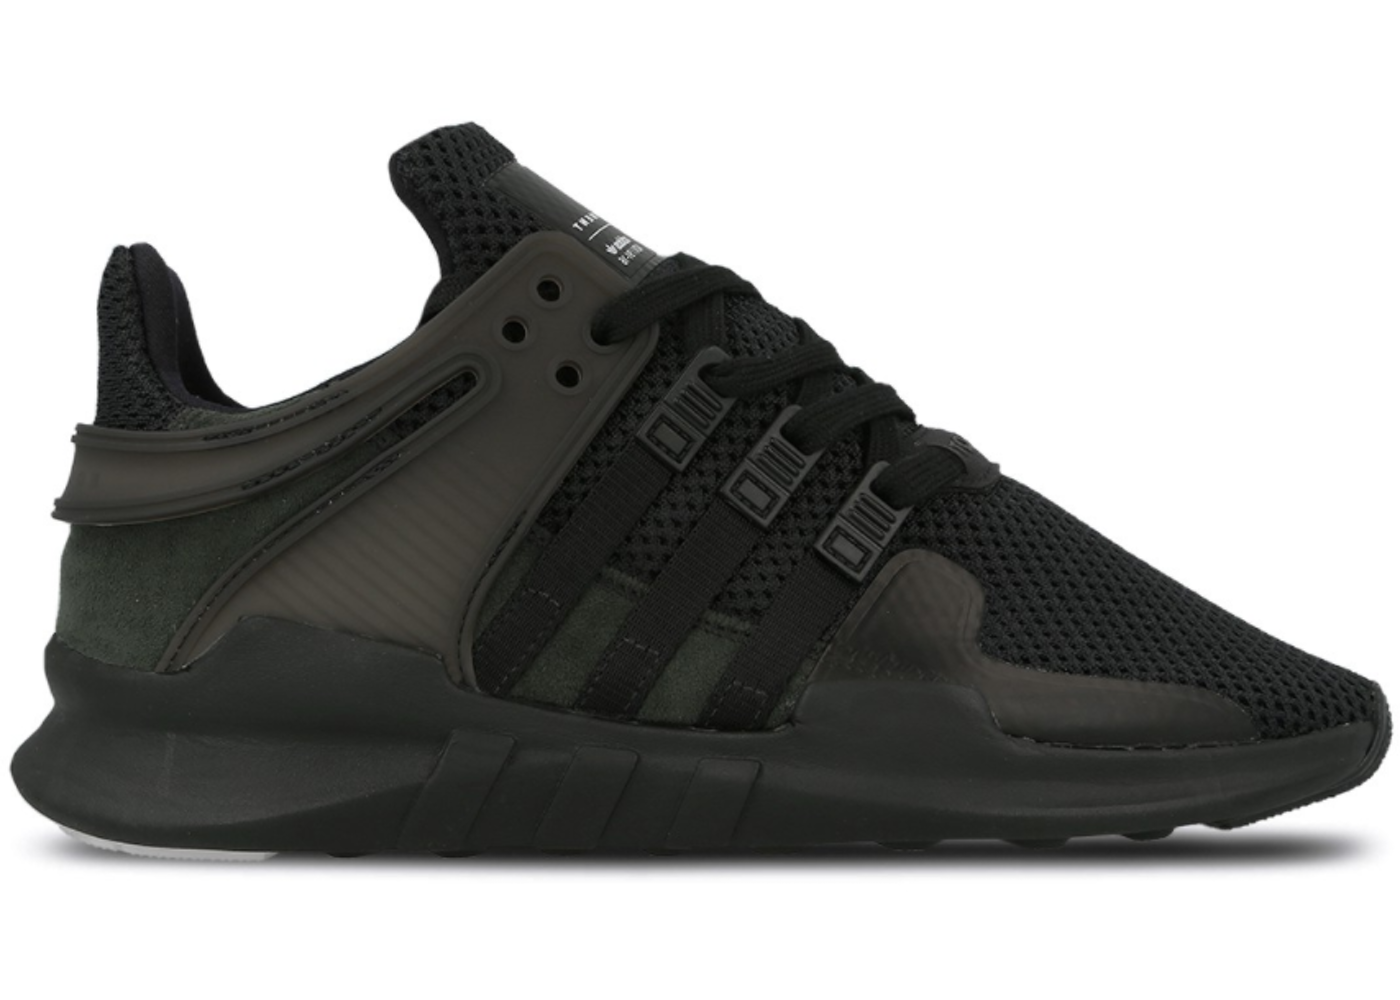 adidas EQT Support ADV Camo Pack The Boombox